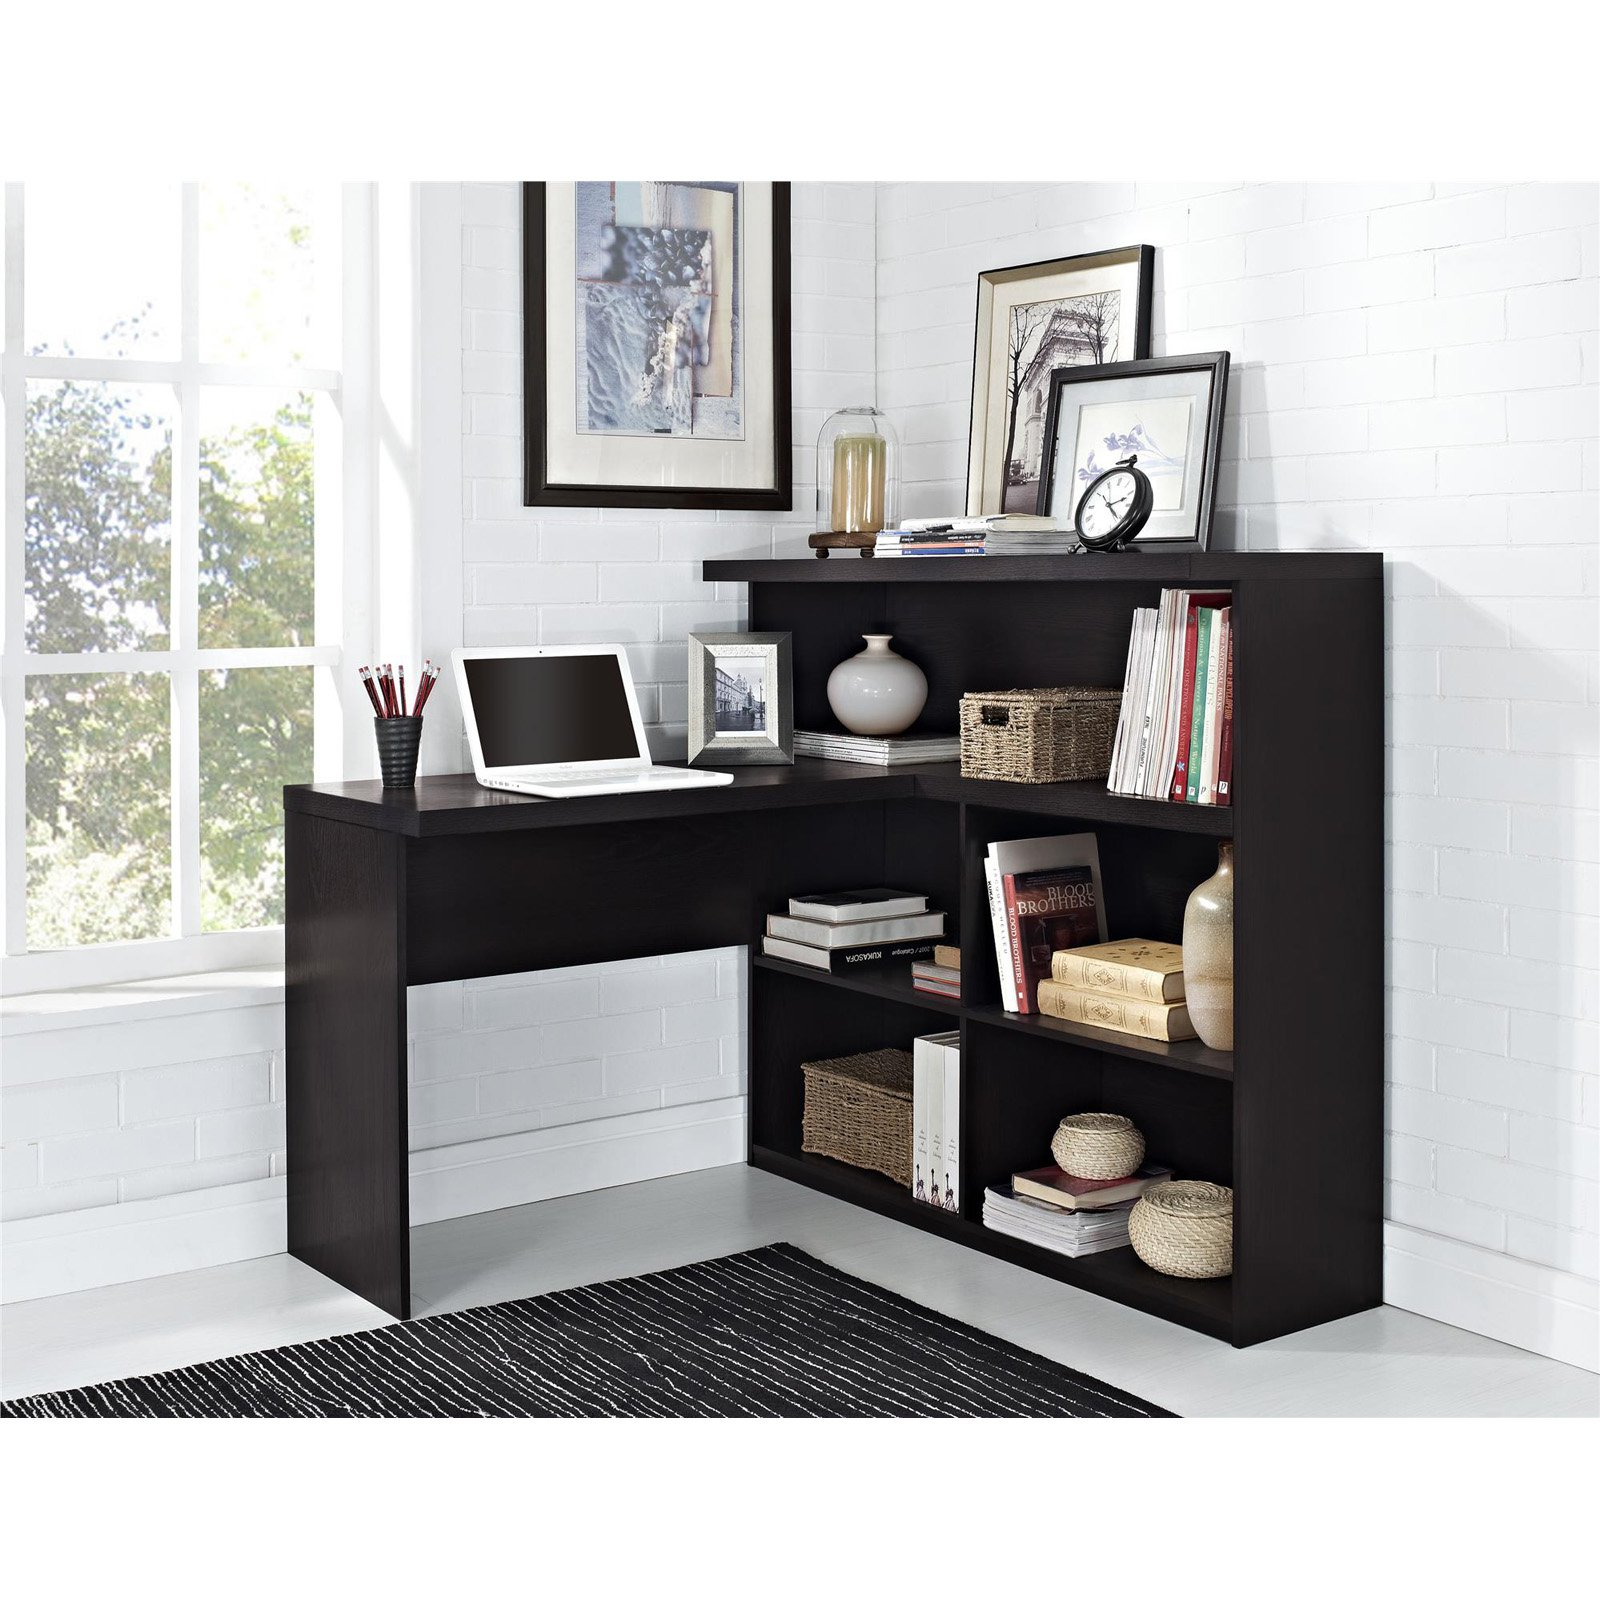 Altra Furniture Trilium Way Sit/stand L-